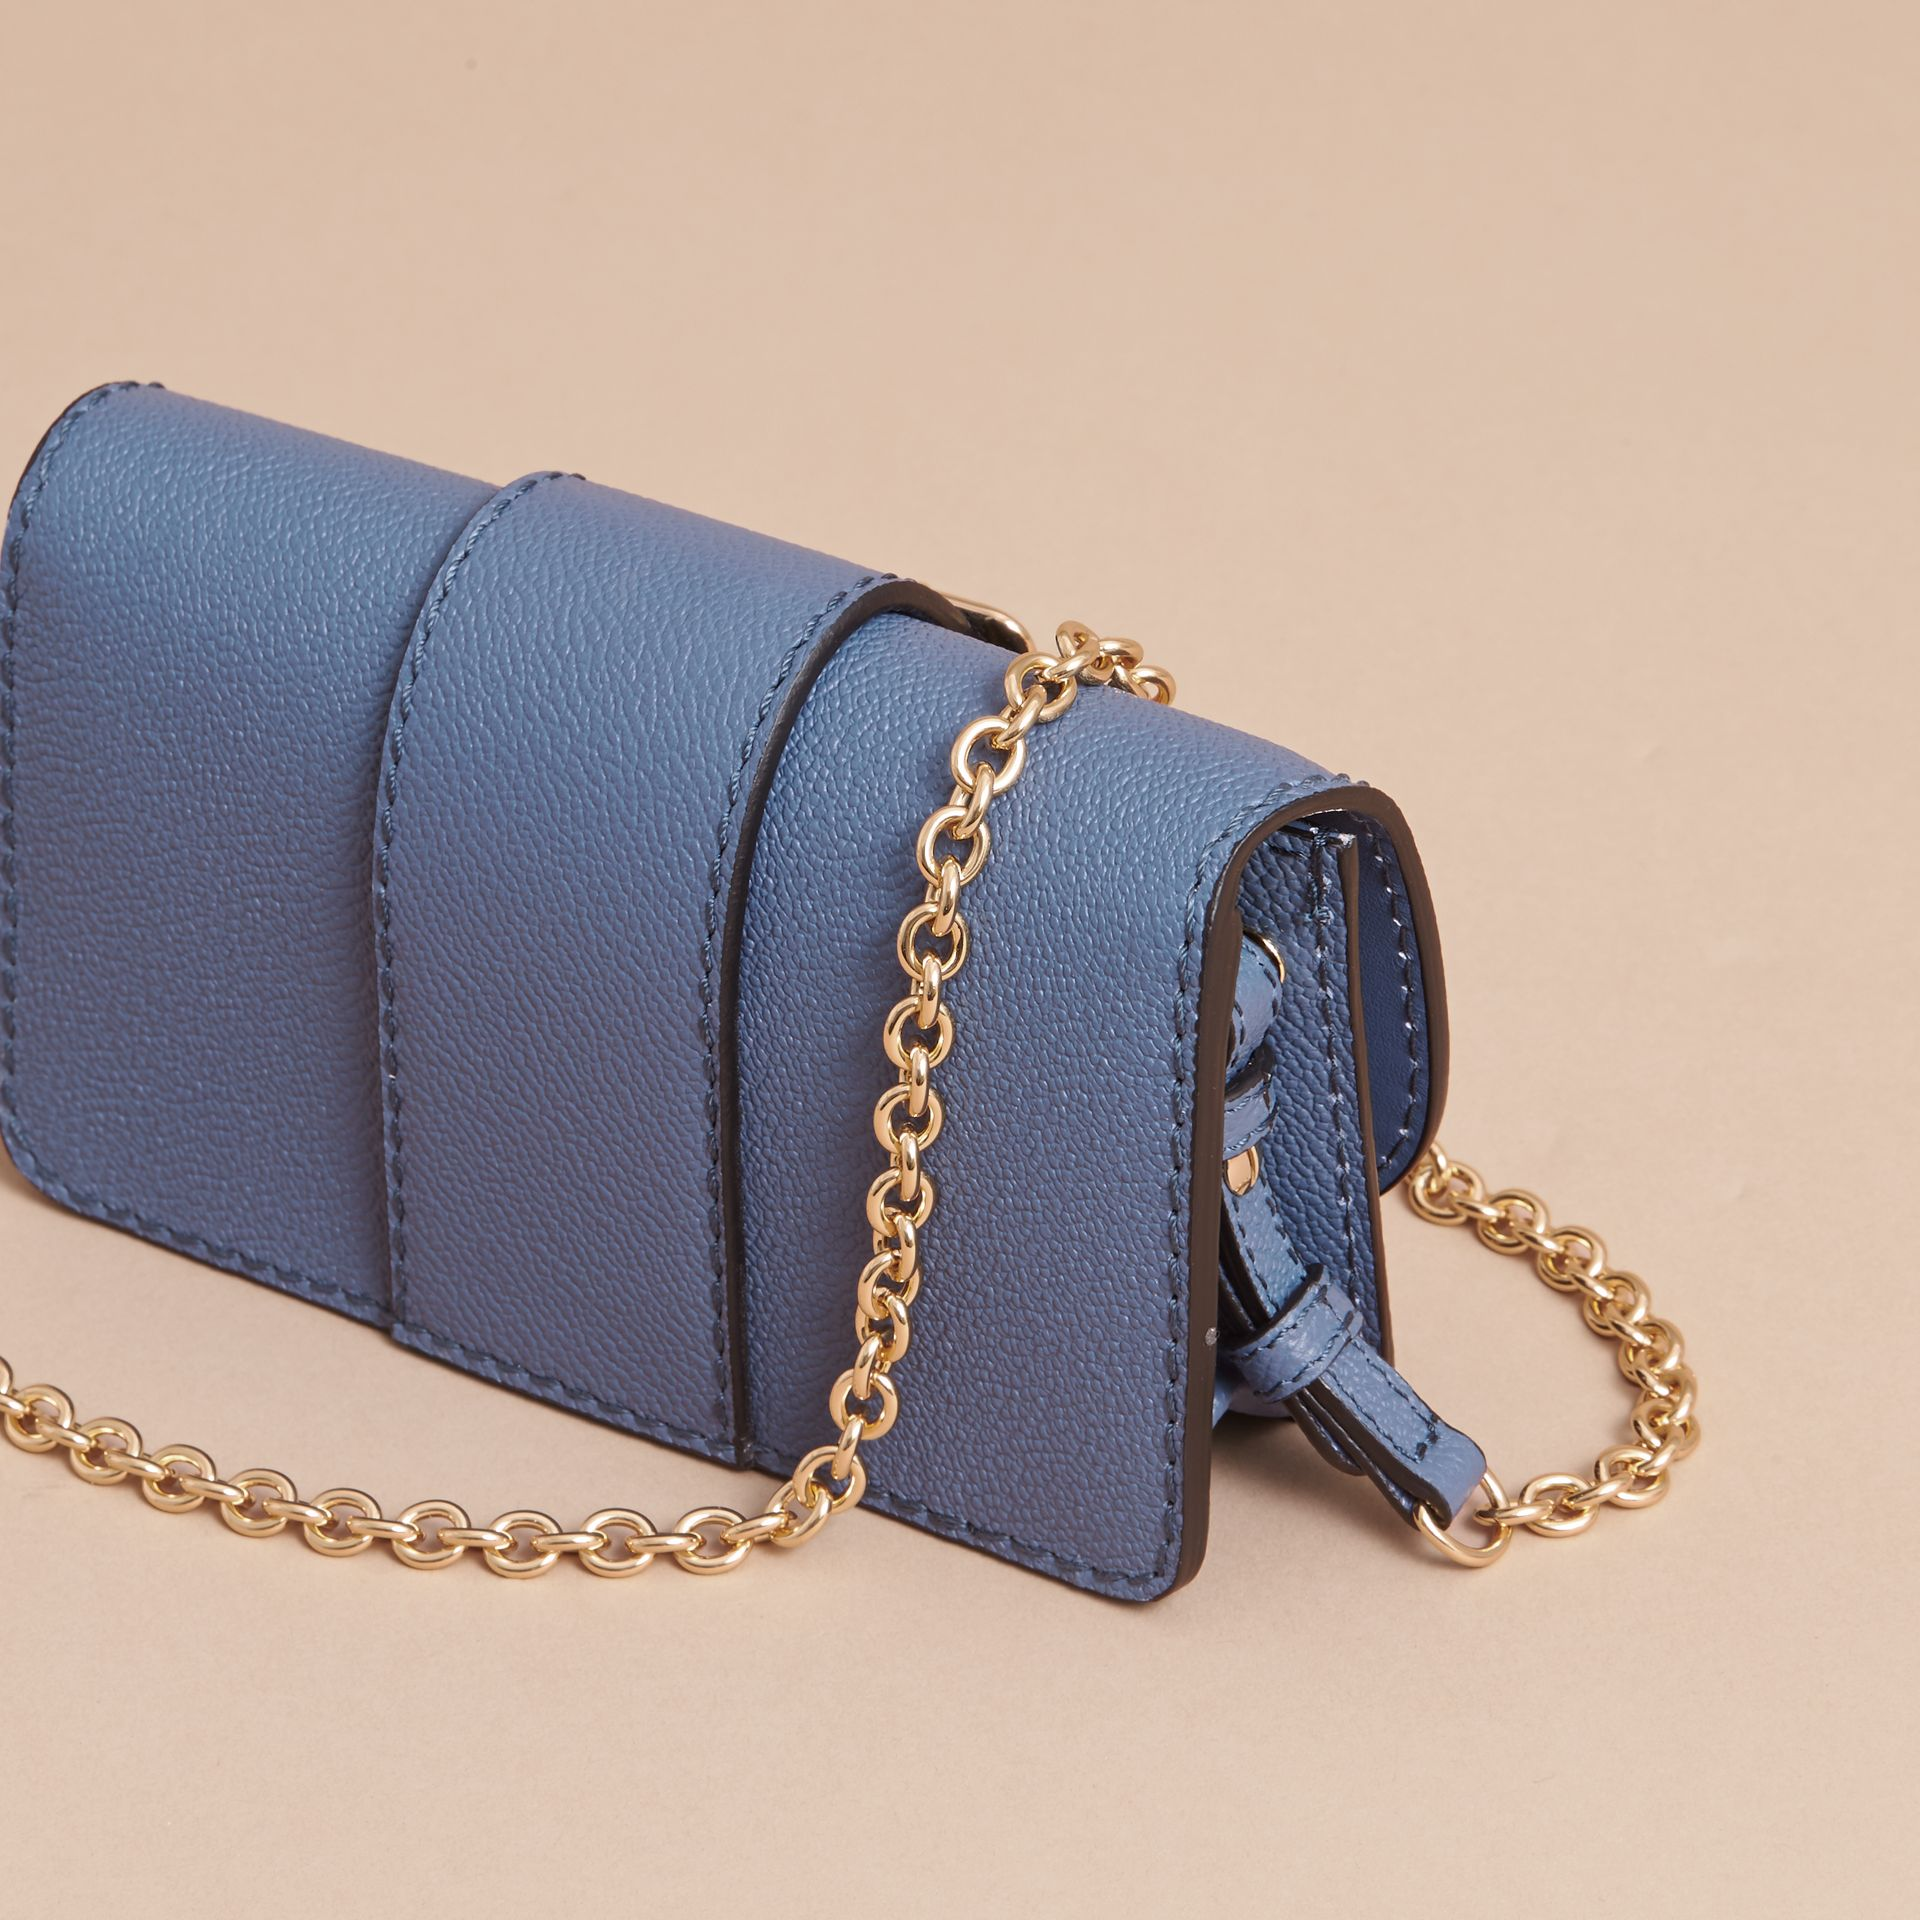 The Mini Buckle Bag in Grainy Leather in Steel Blue - Women | Burberry Hong Kong - gallery image 3